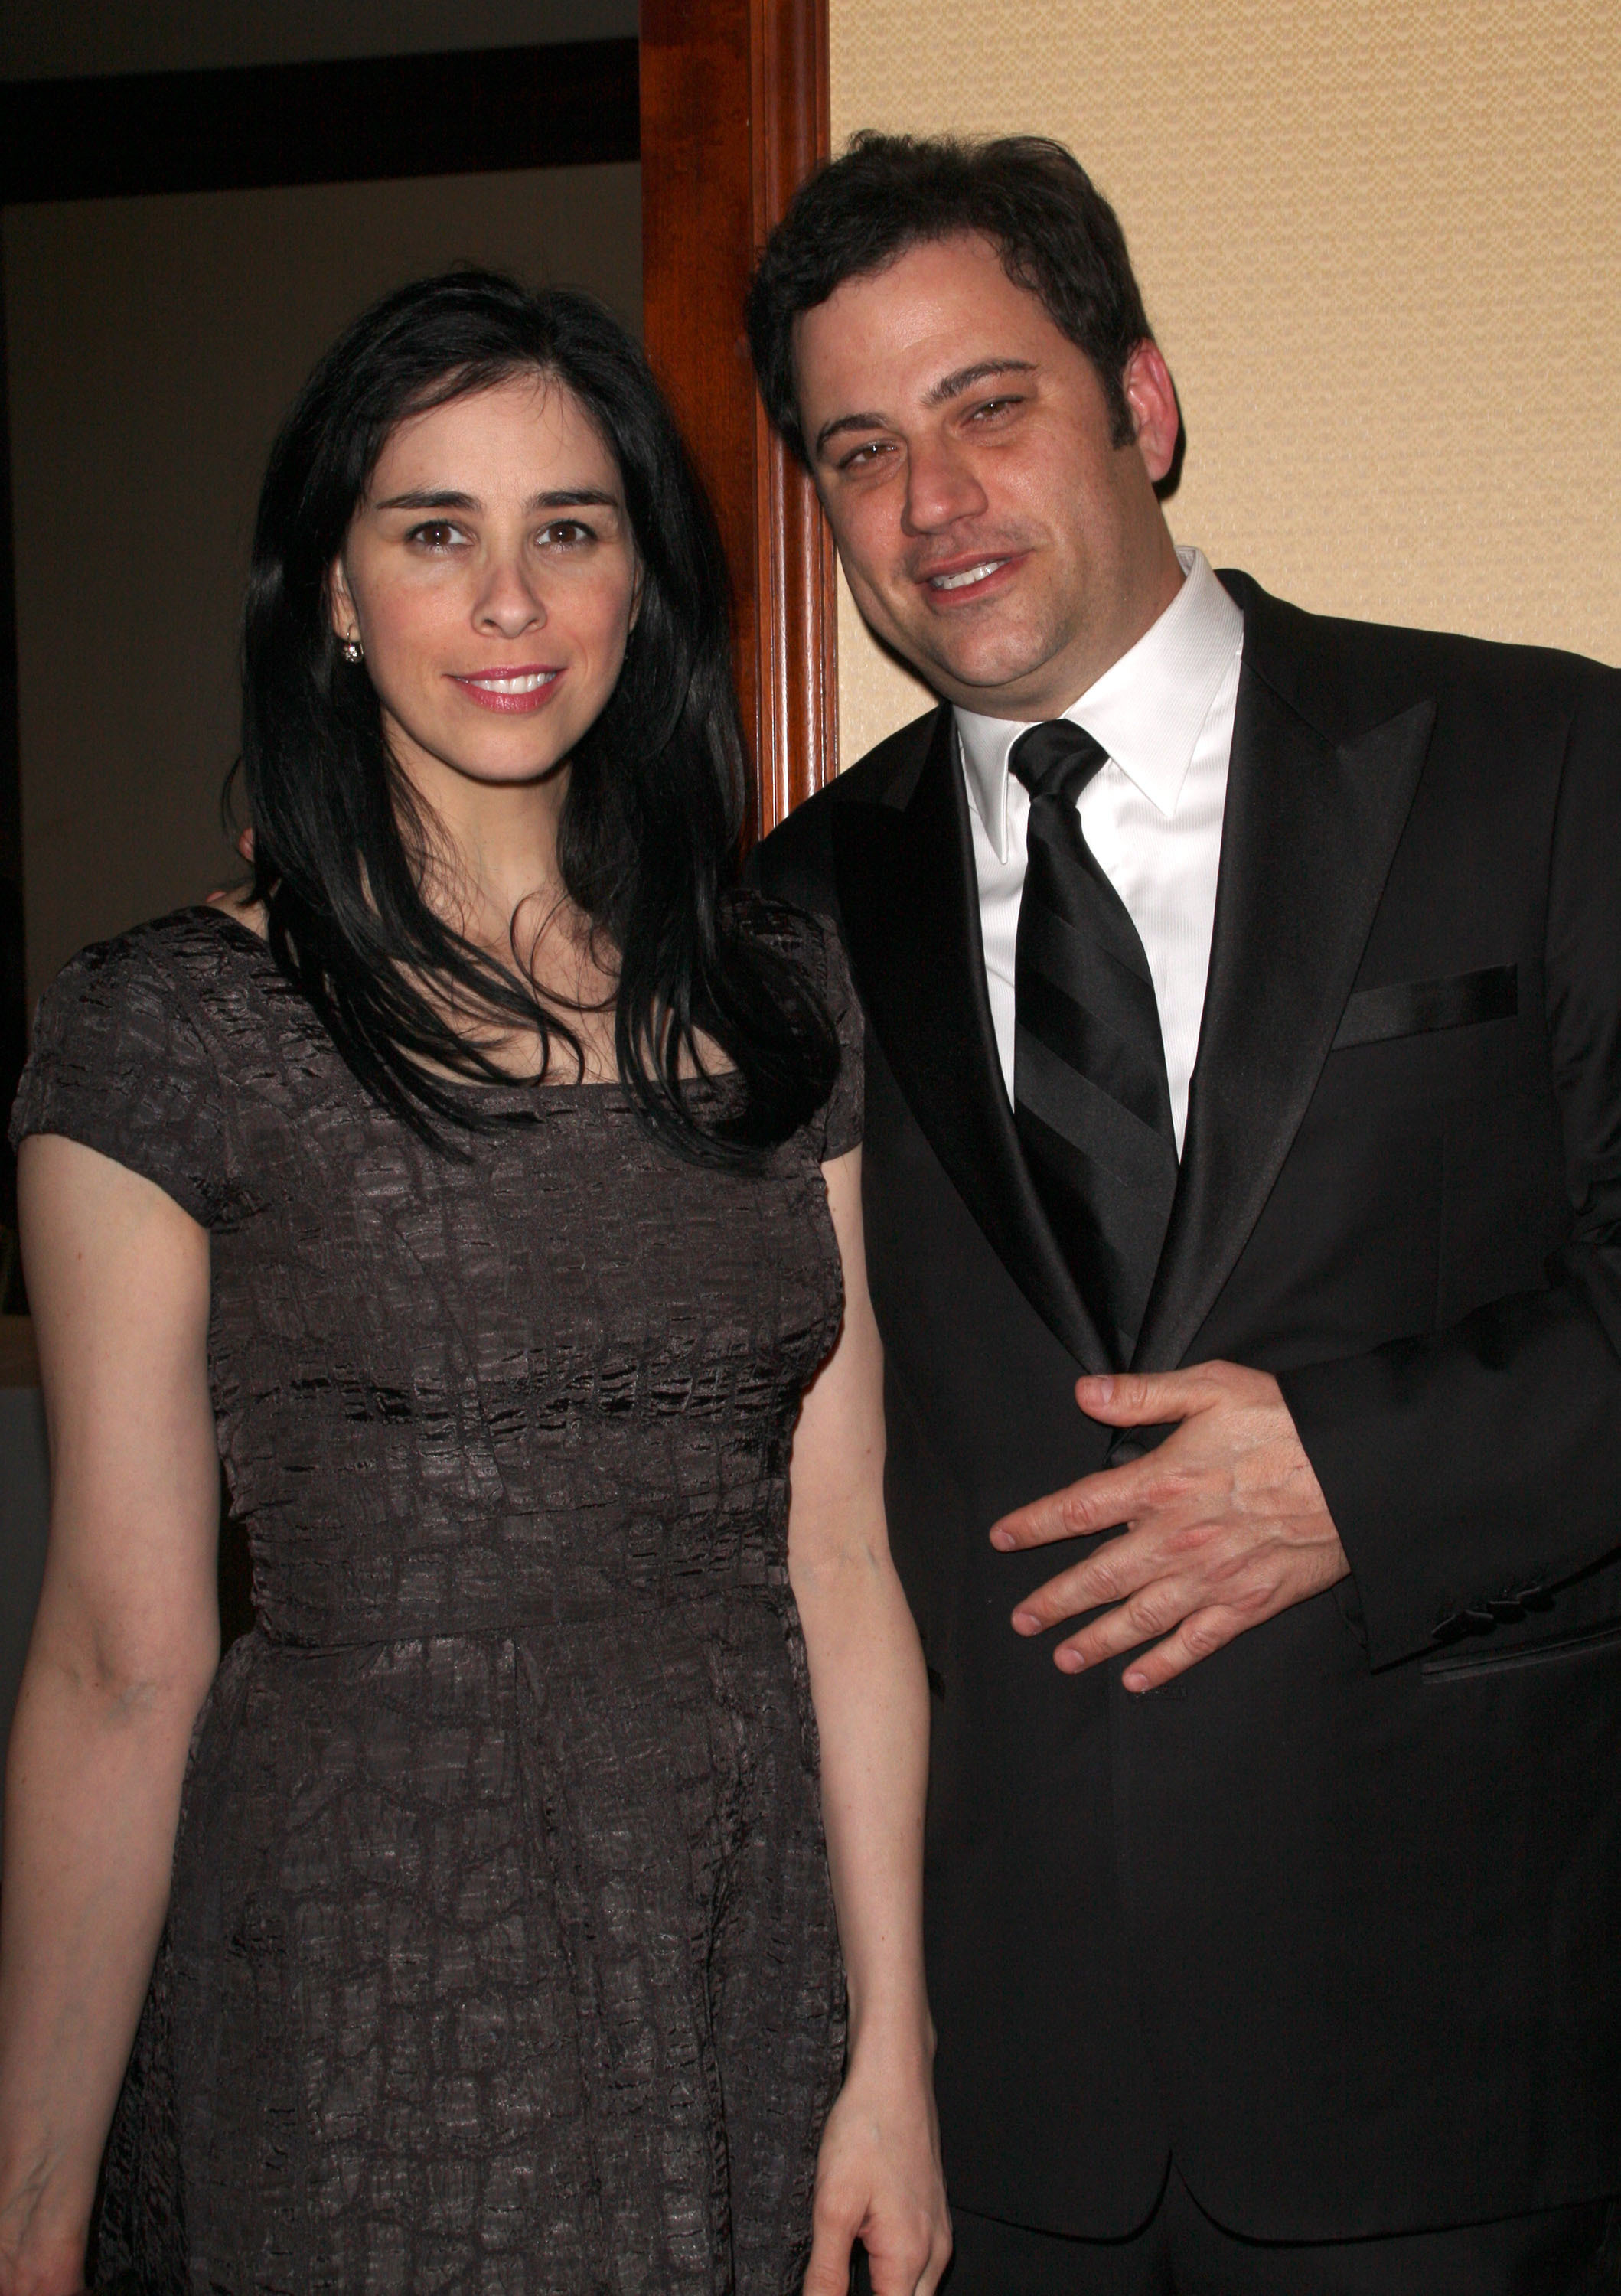 when did sarah silverman and jimmy kimmel start dating